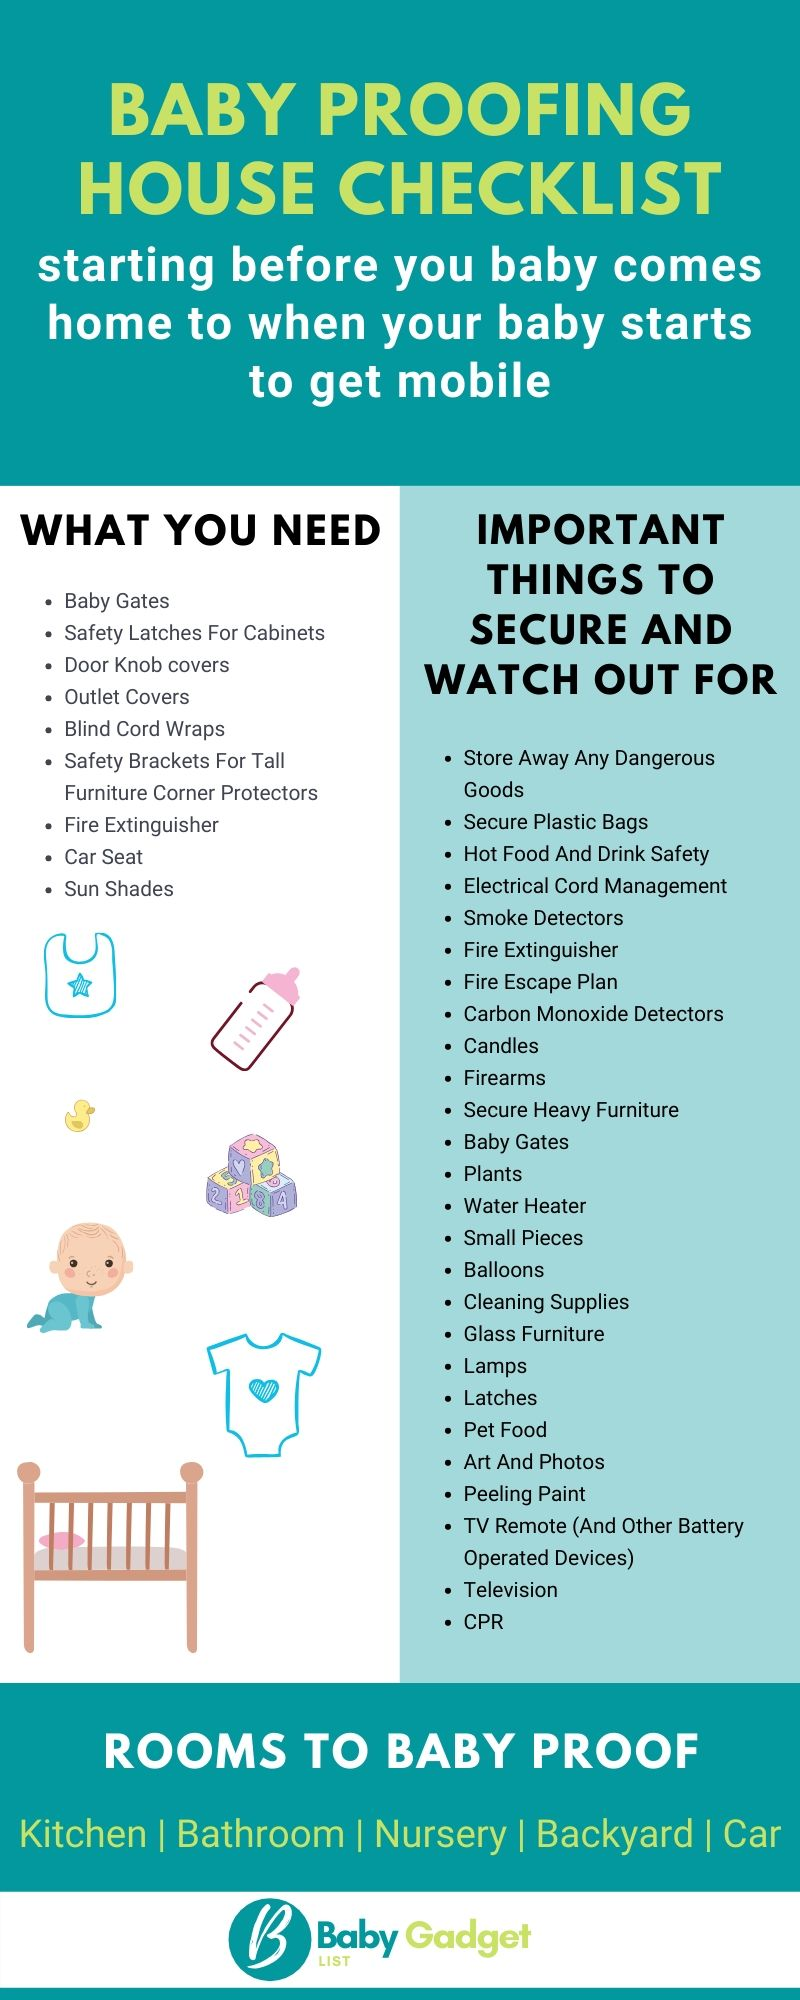 Baby Proofing House Checklist Infographic